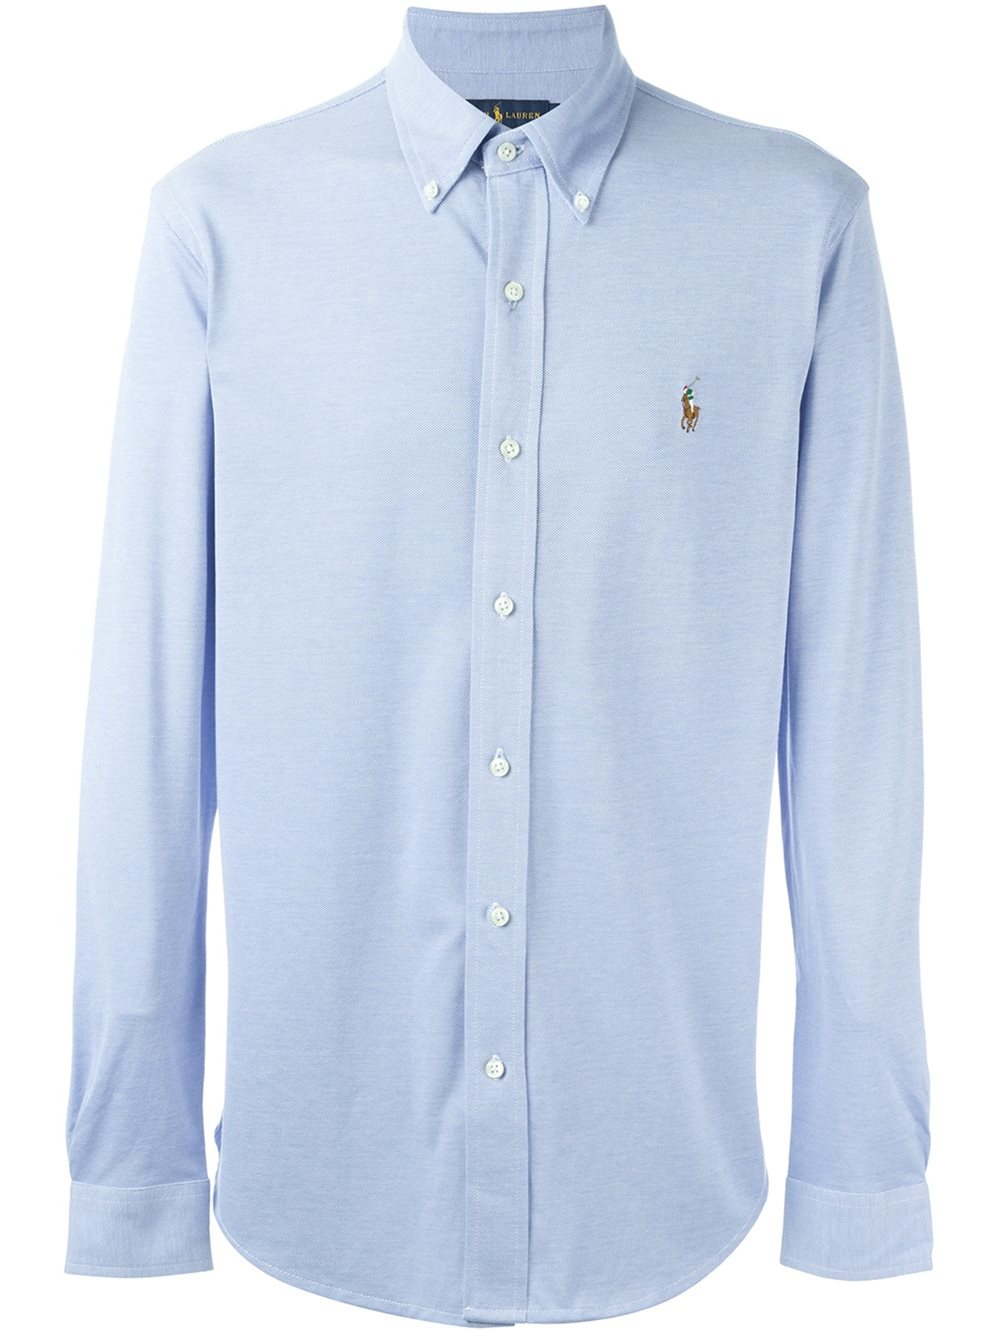 Pink pony embroidered logo shirt in blue for men lyst for Embroidered logos on shirts